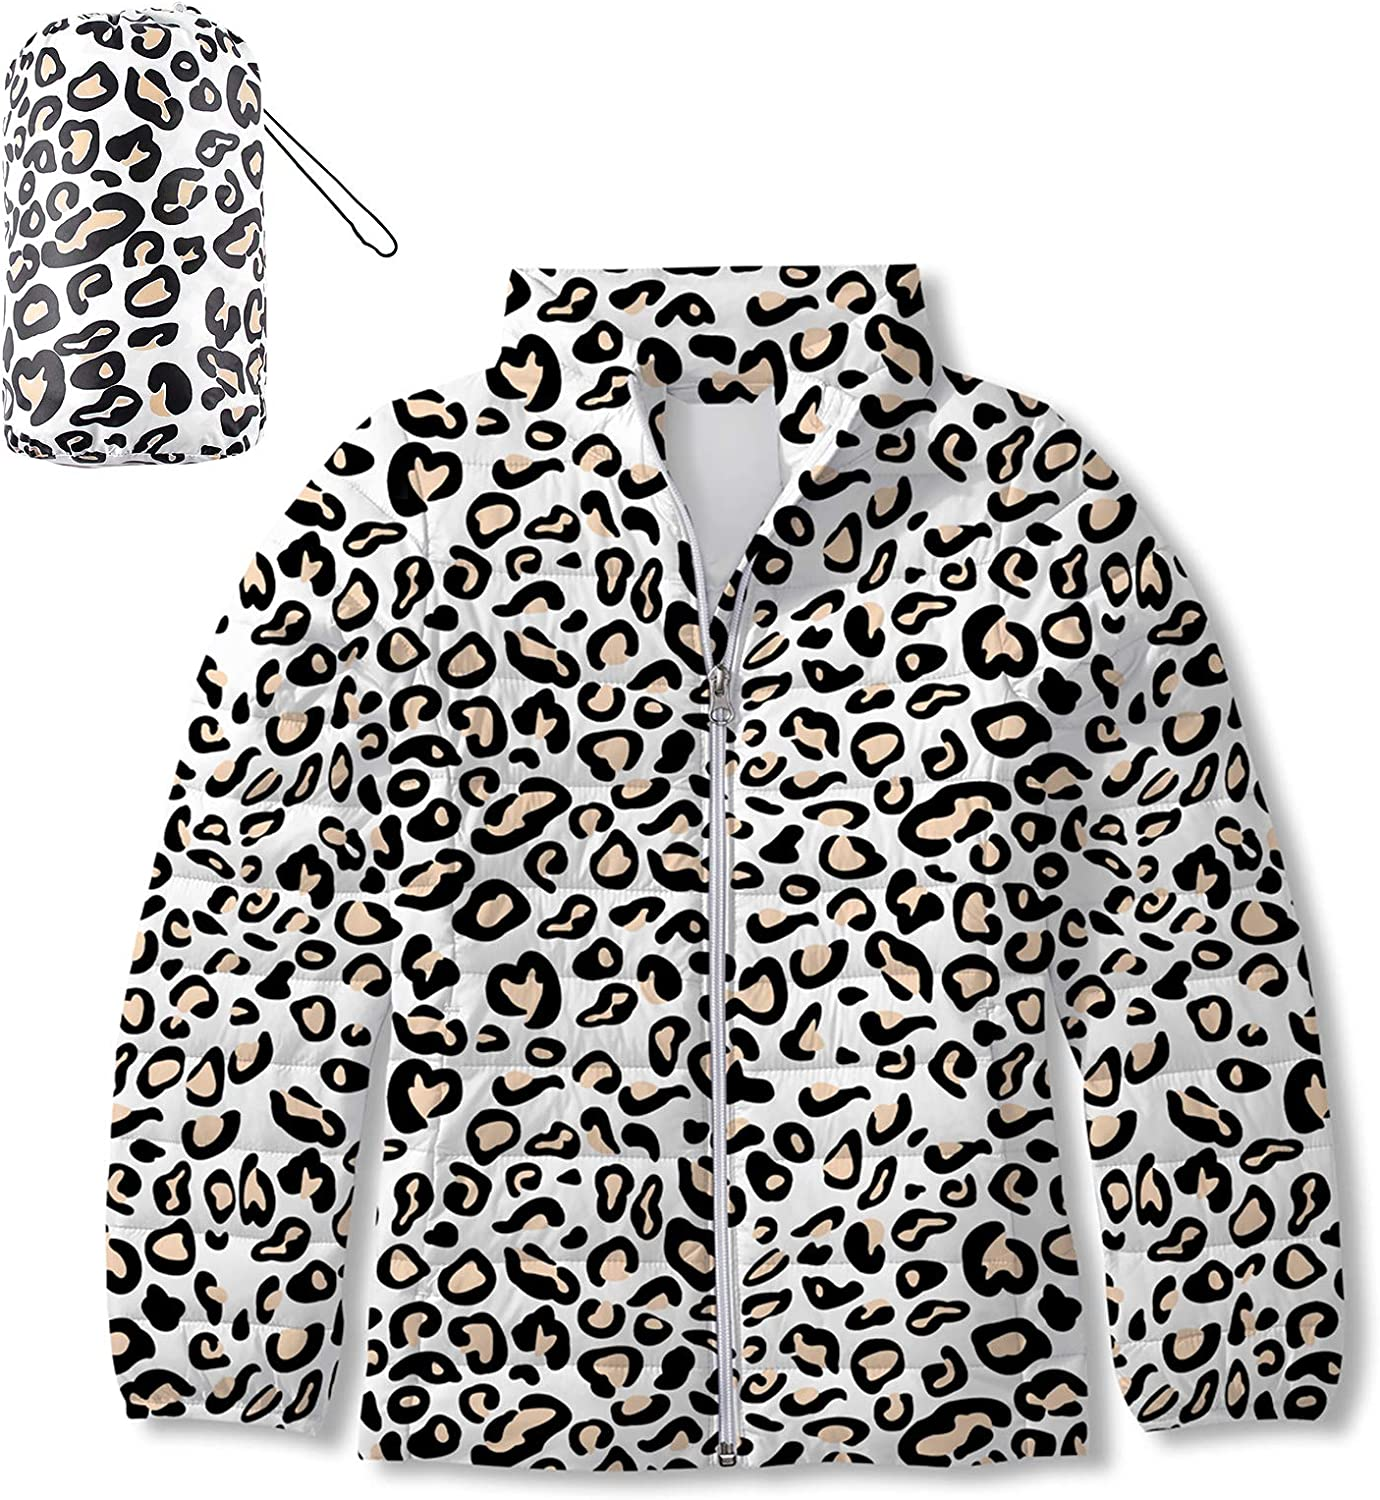 Enlifety Girls Puffer Jacket Special Campaign Cute Branded goods Coat Puffy Warm Print Outwear